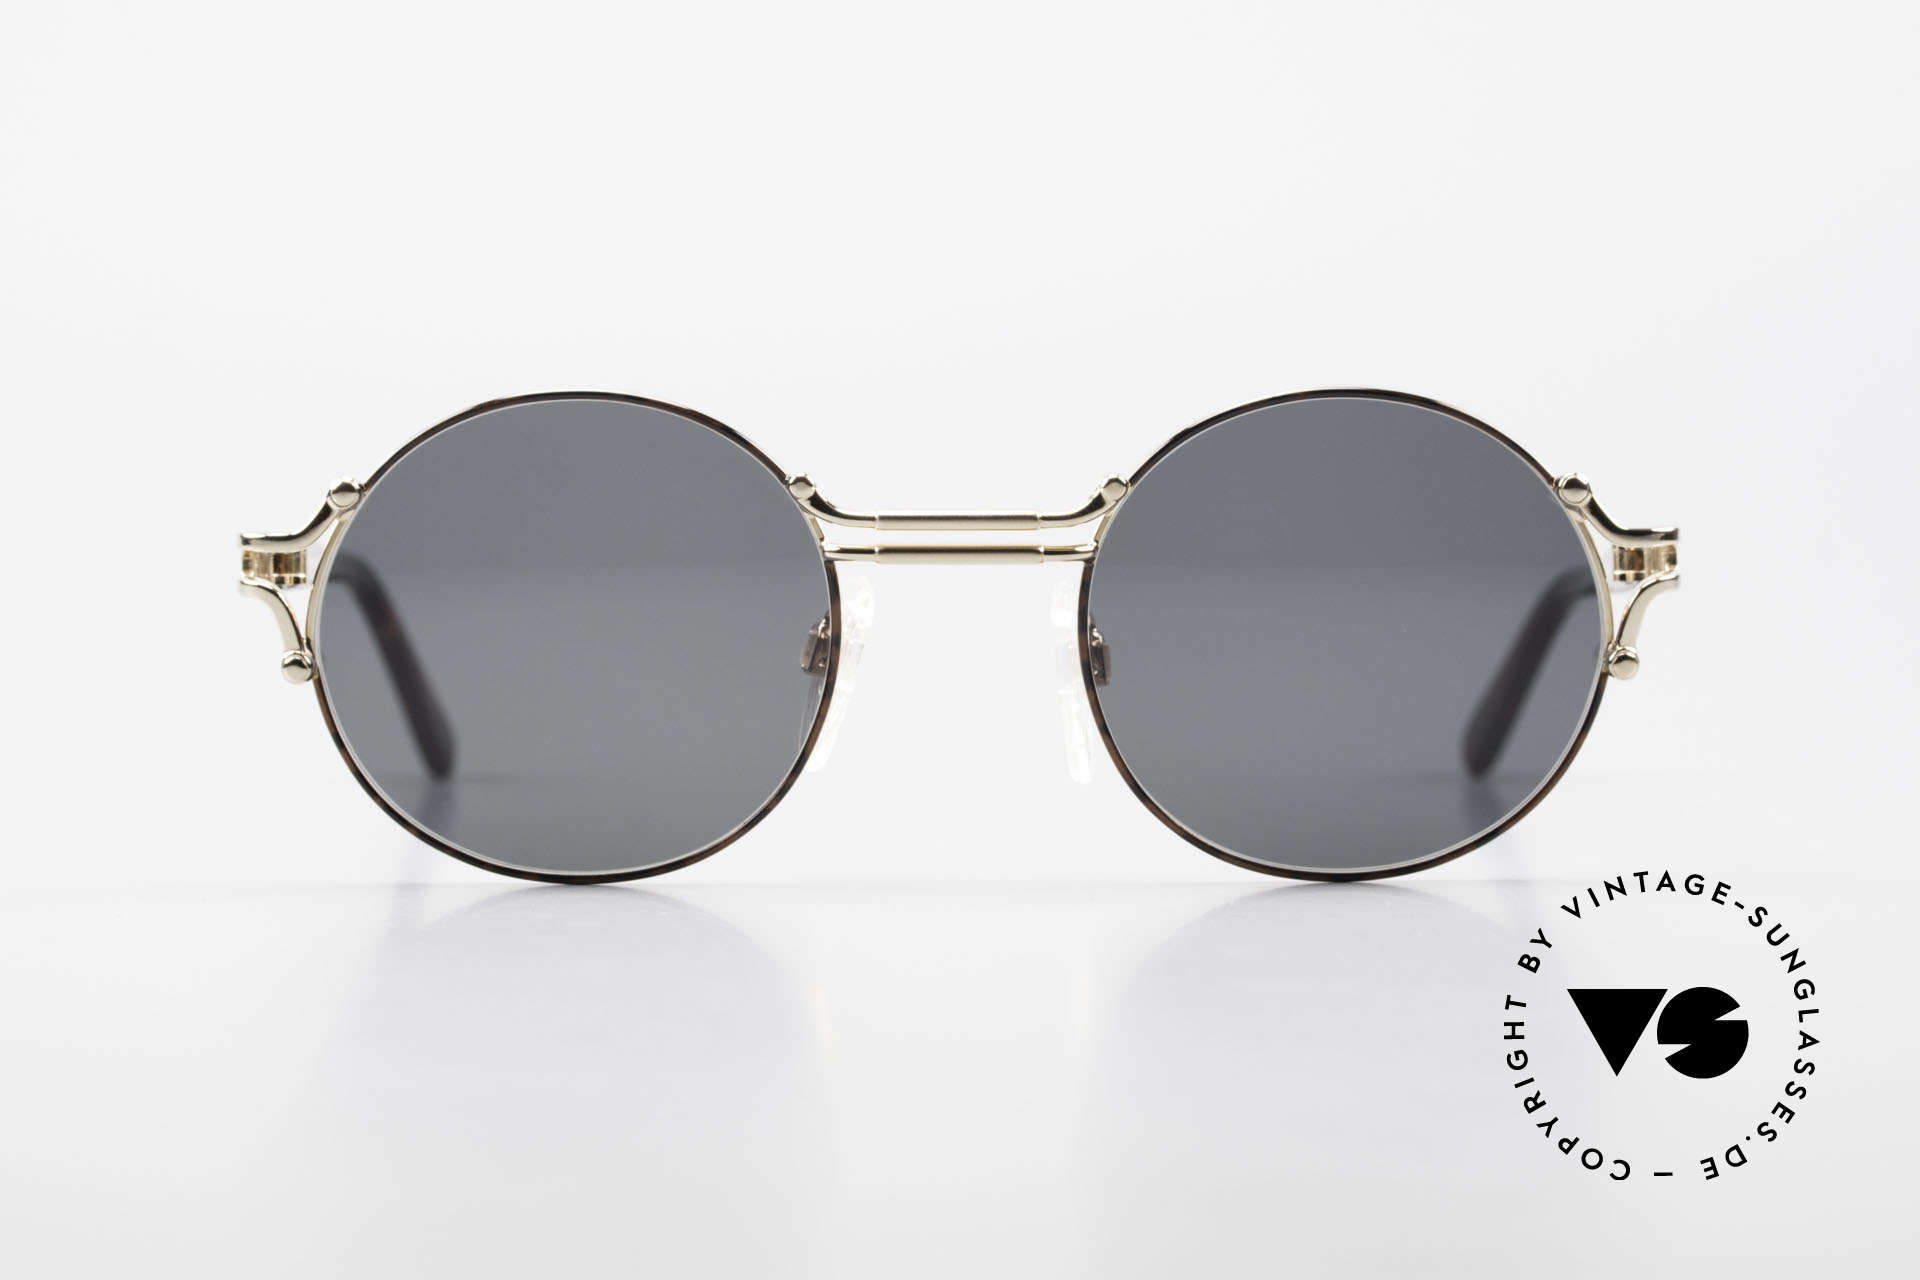 Neostyle Academic 8 Round Vintage Sunglasses 80's, round, timeless vintage eyeglasses of the 80's, Made for Men and Women